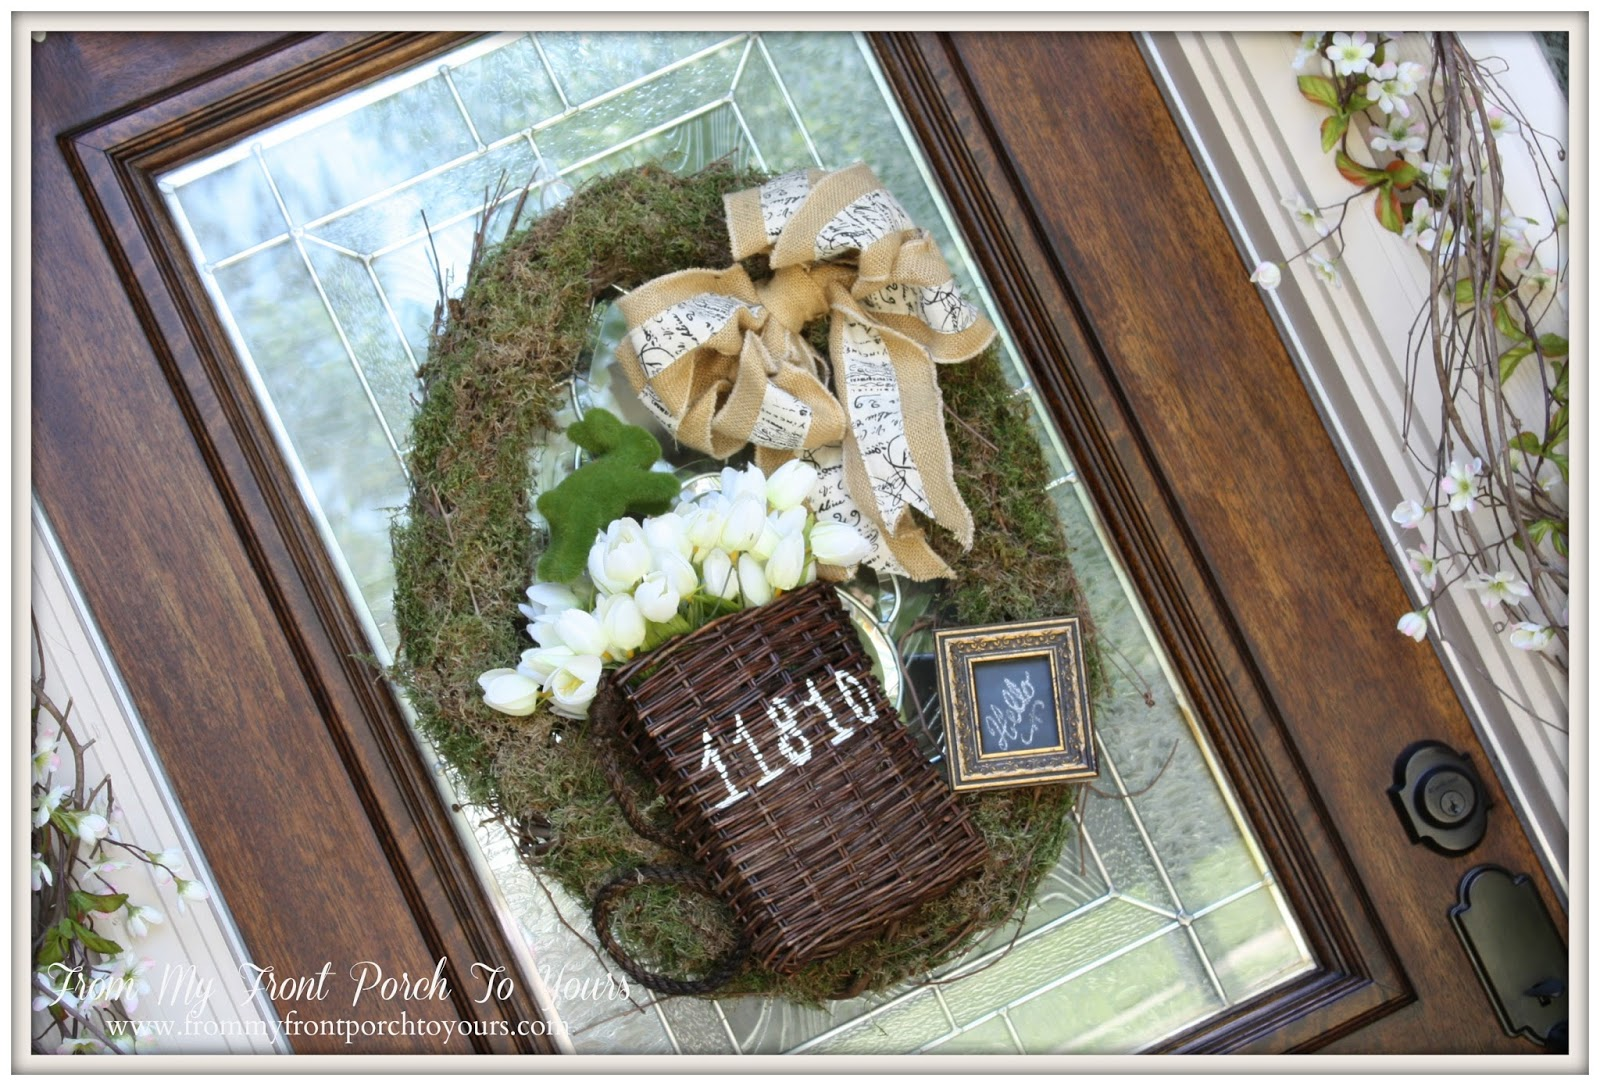 From My Front Porch To Yours- Spring Porch 2014 Moss Wreath